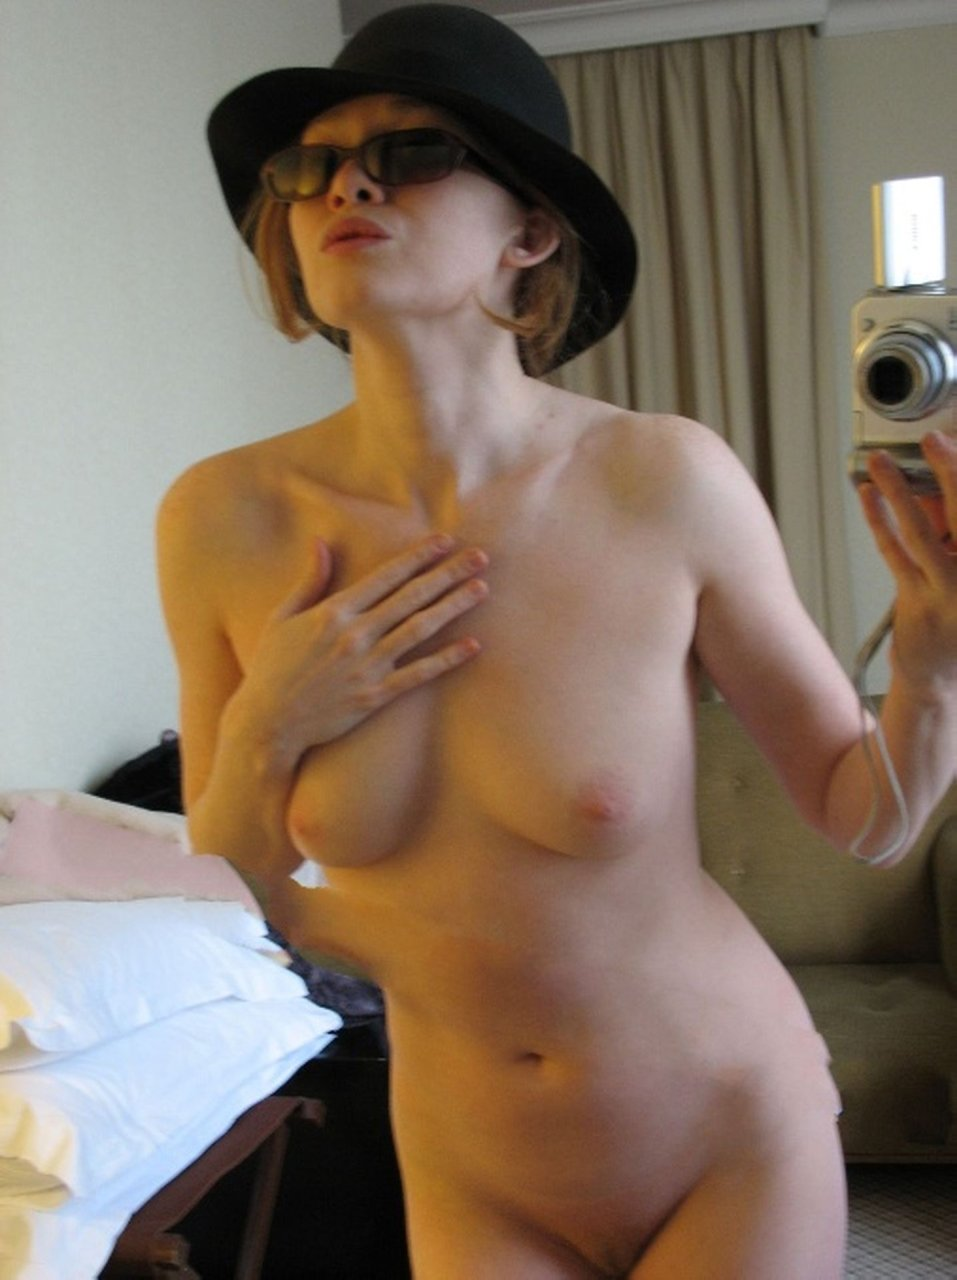 Mireille Enos Nude Leaked Fappening 4 Photos Thefappening